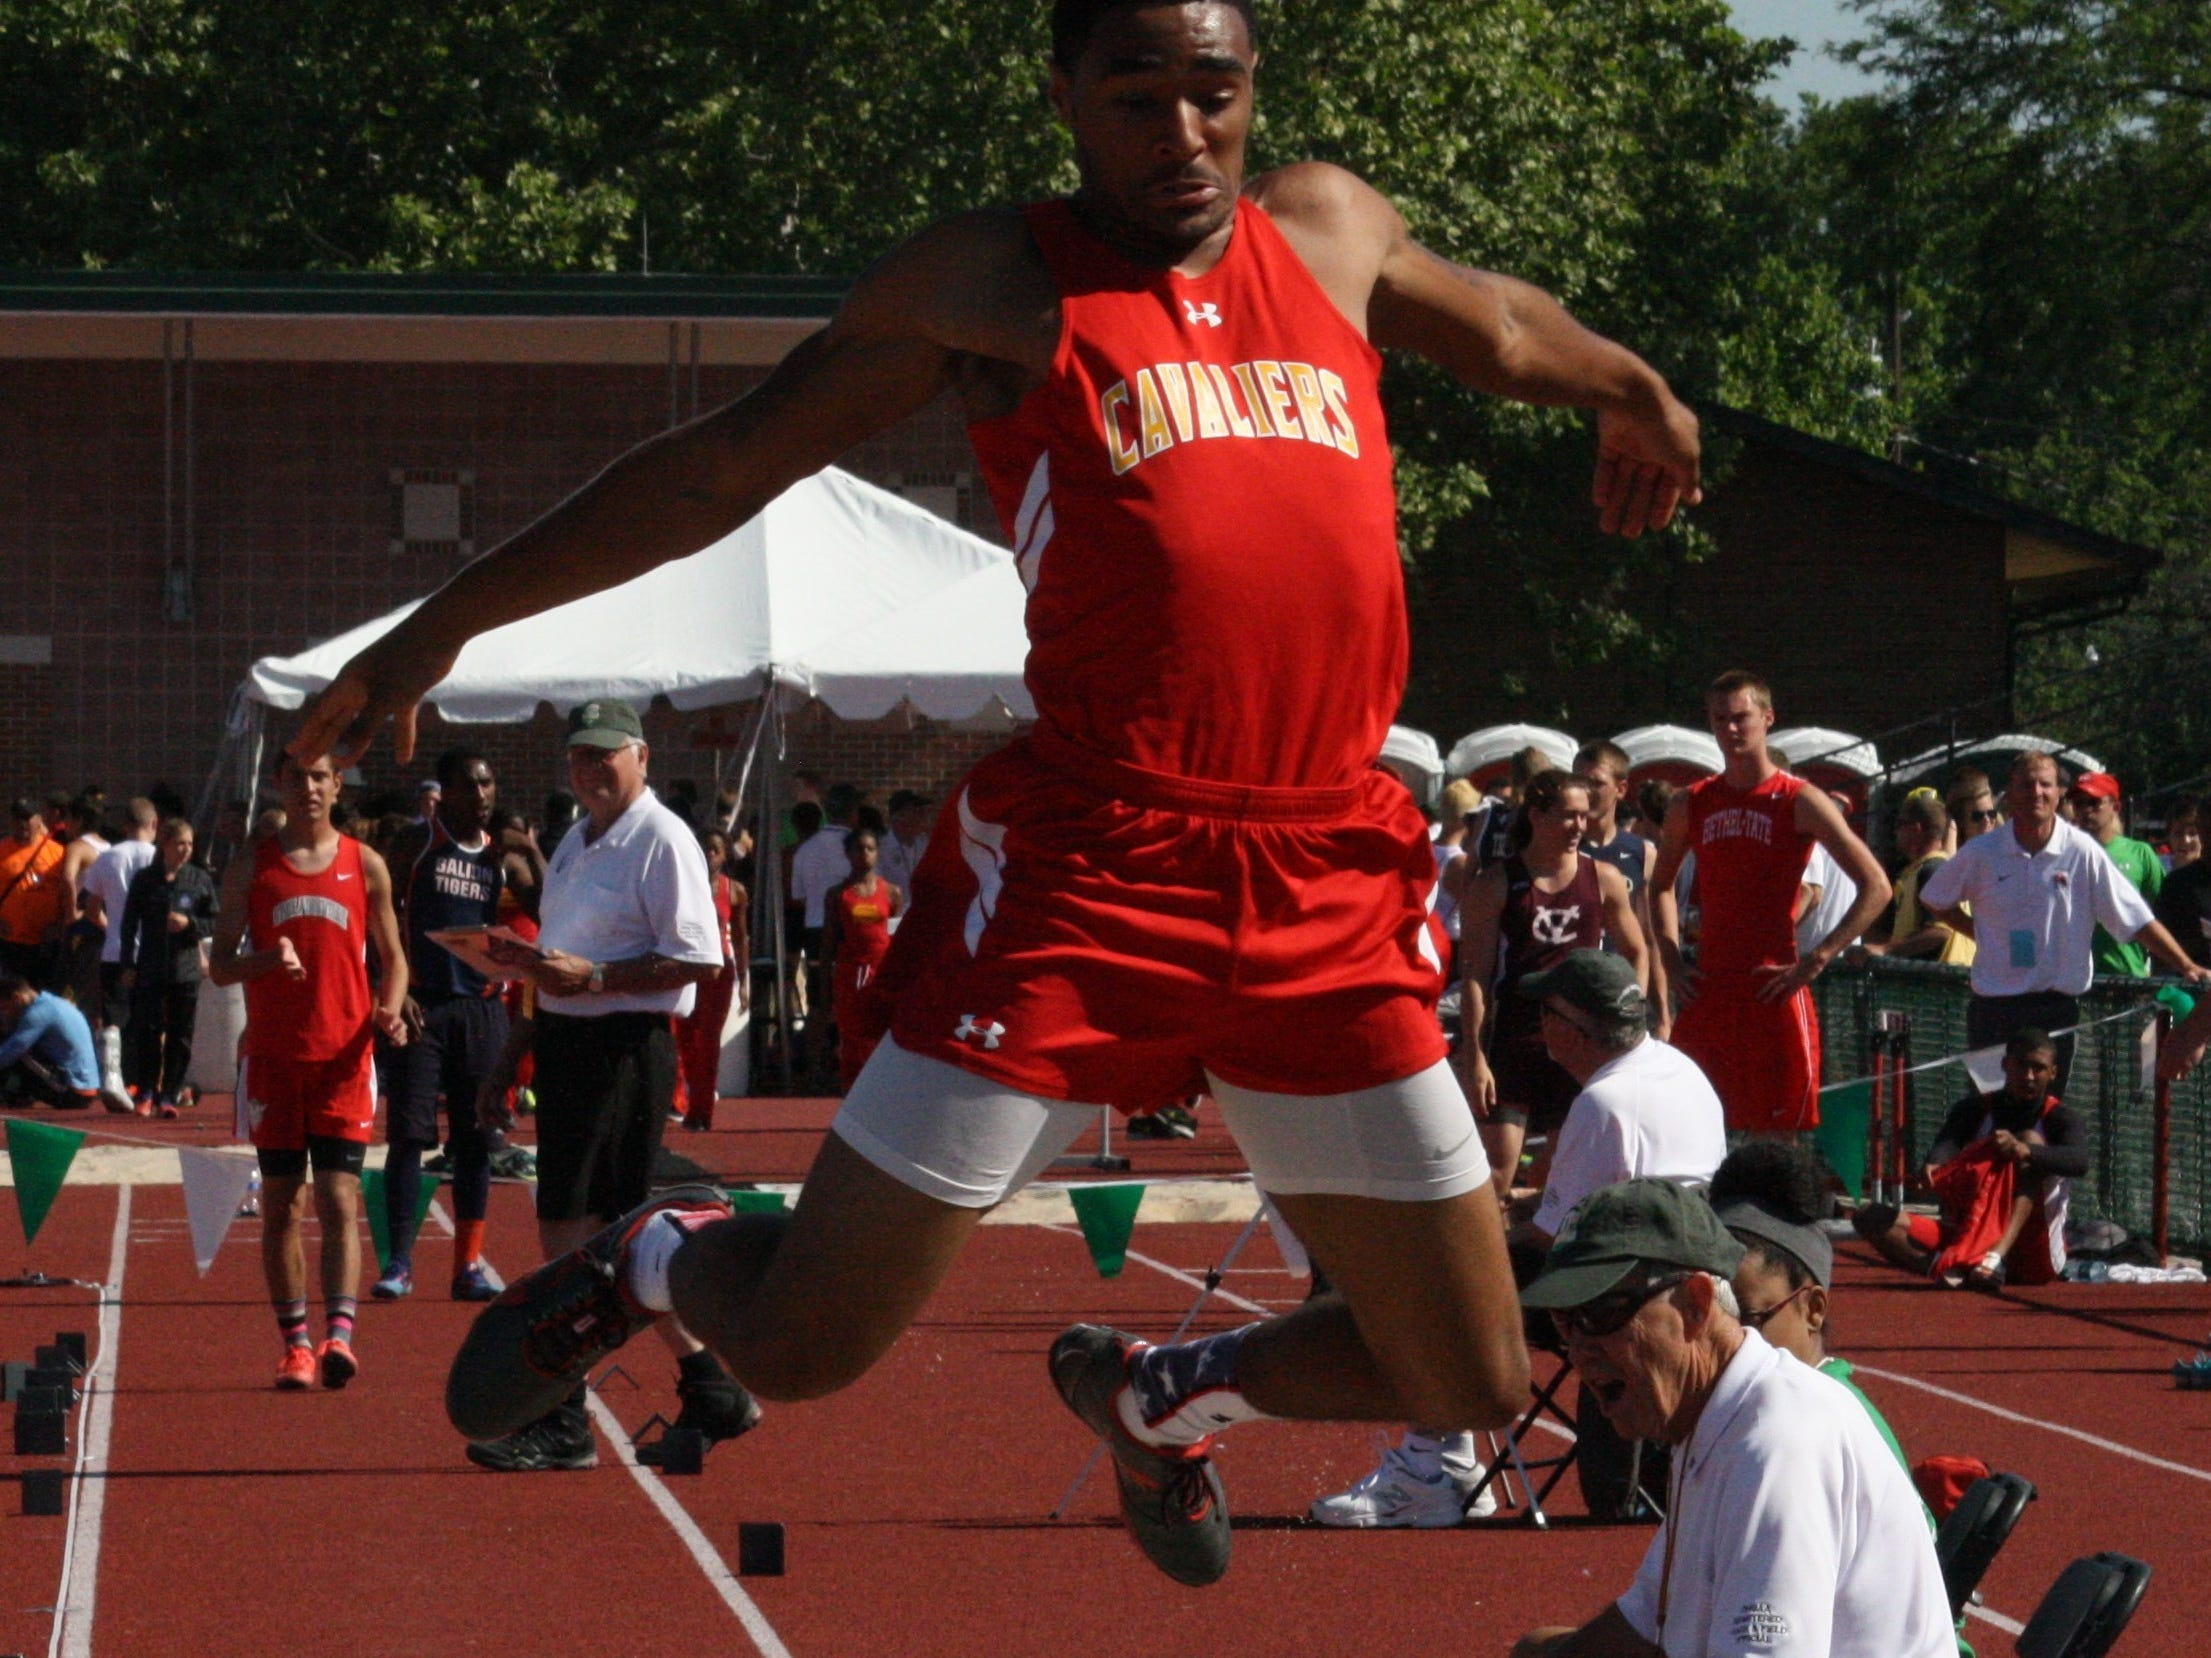 Purcell Marian's Jair Knox leaps and lands his first jump in the long jump competition at the OHSAA Division II state track and field championships last June at Jesse Owens Memorial Stadium on the campus of Ohio State University. Knox placed eighth in the event.